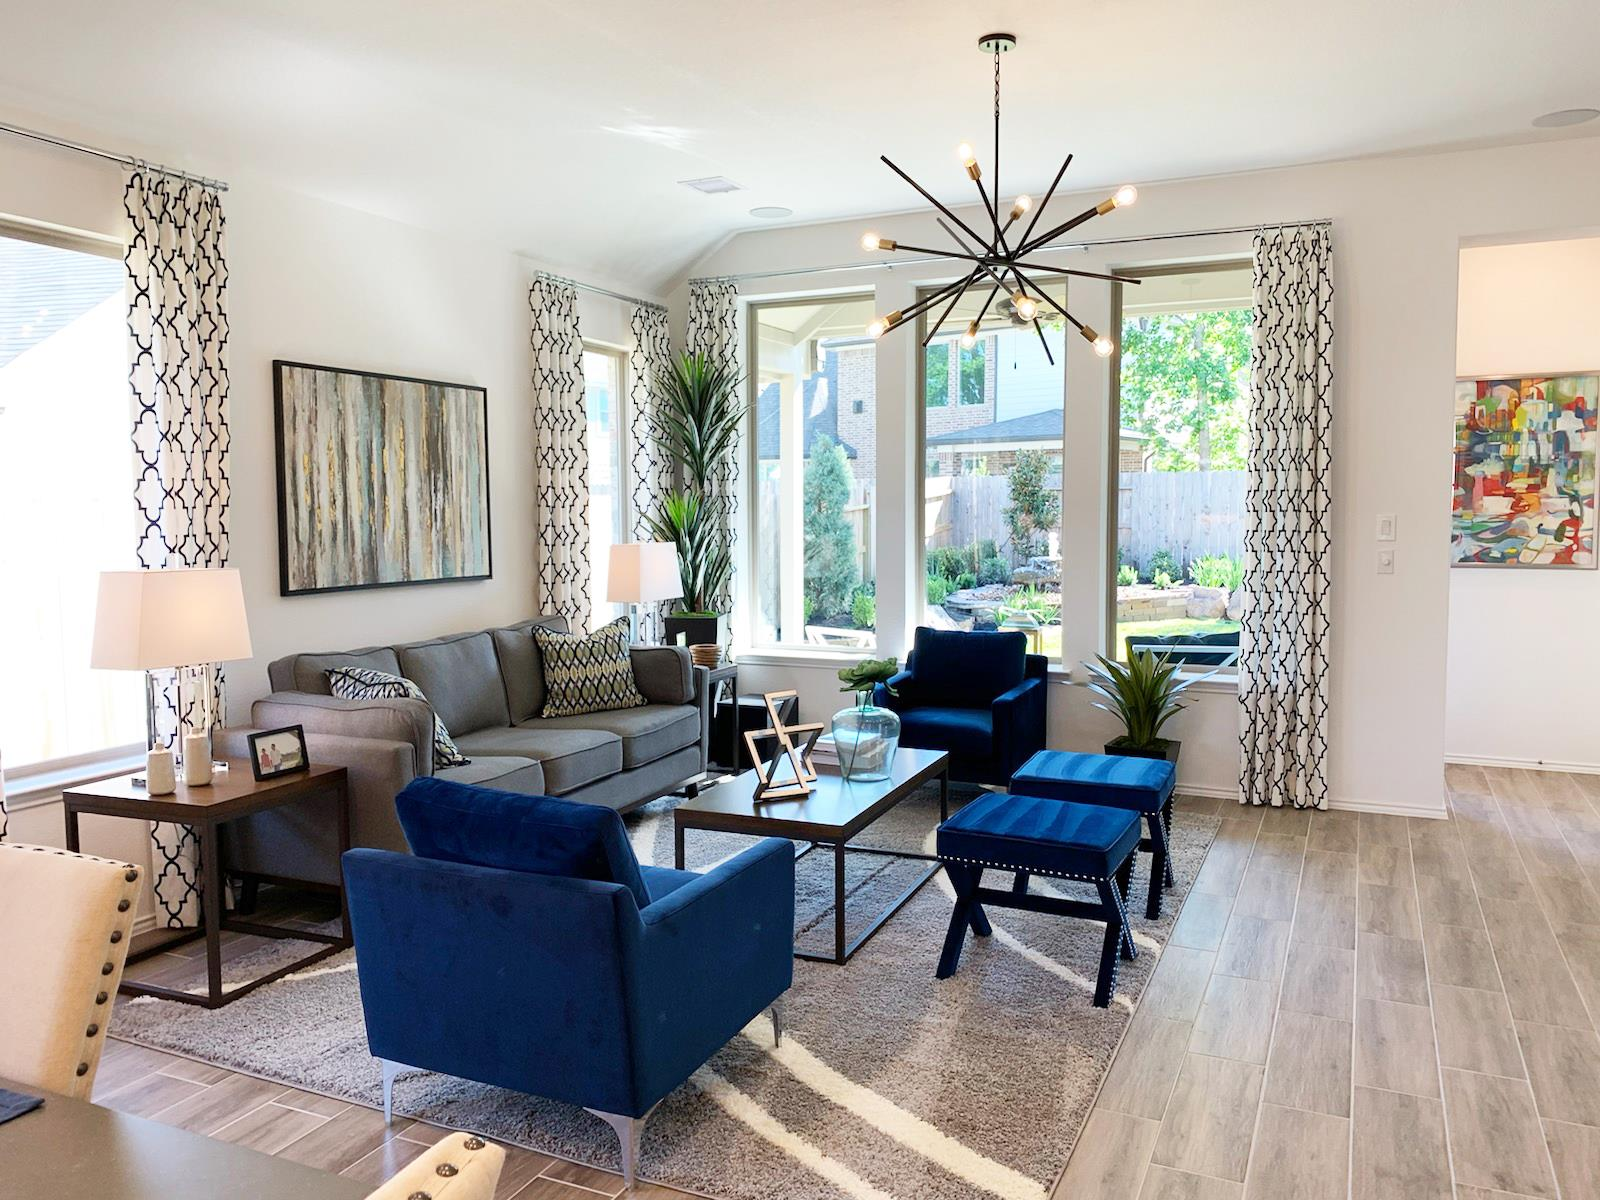 MHI Showcases Range with 3 New Models in The Meadows at Imperial Oaks